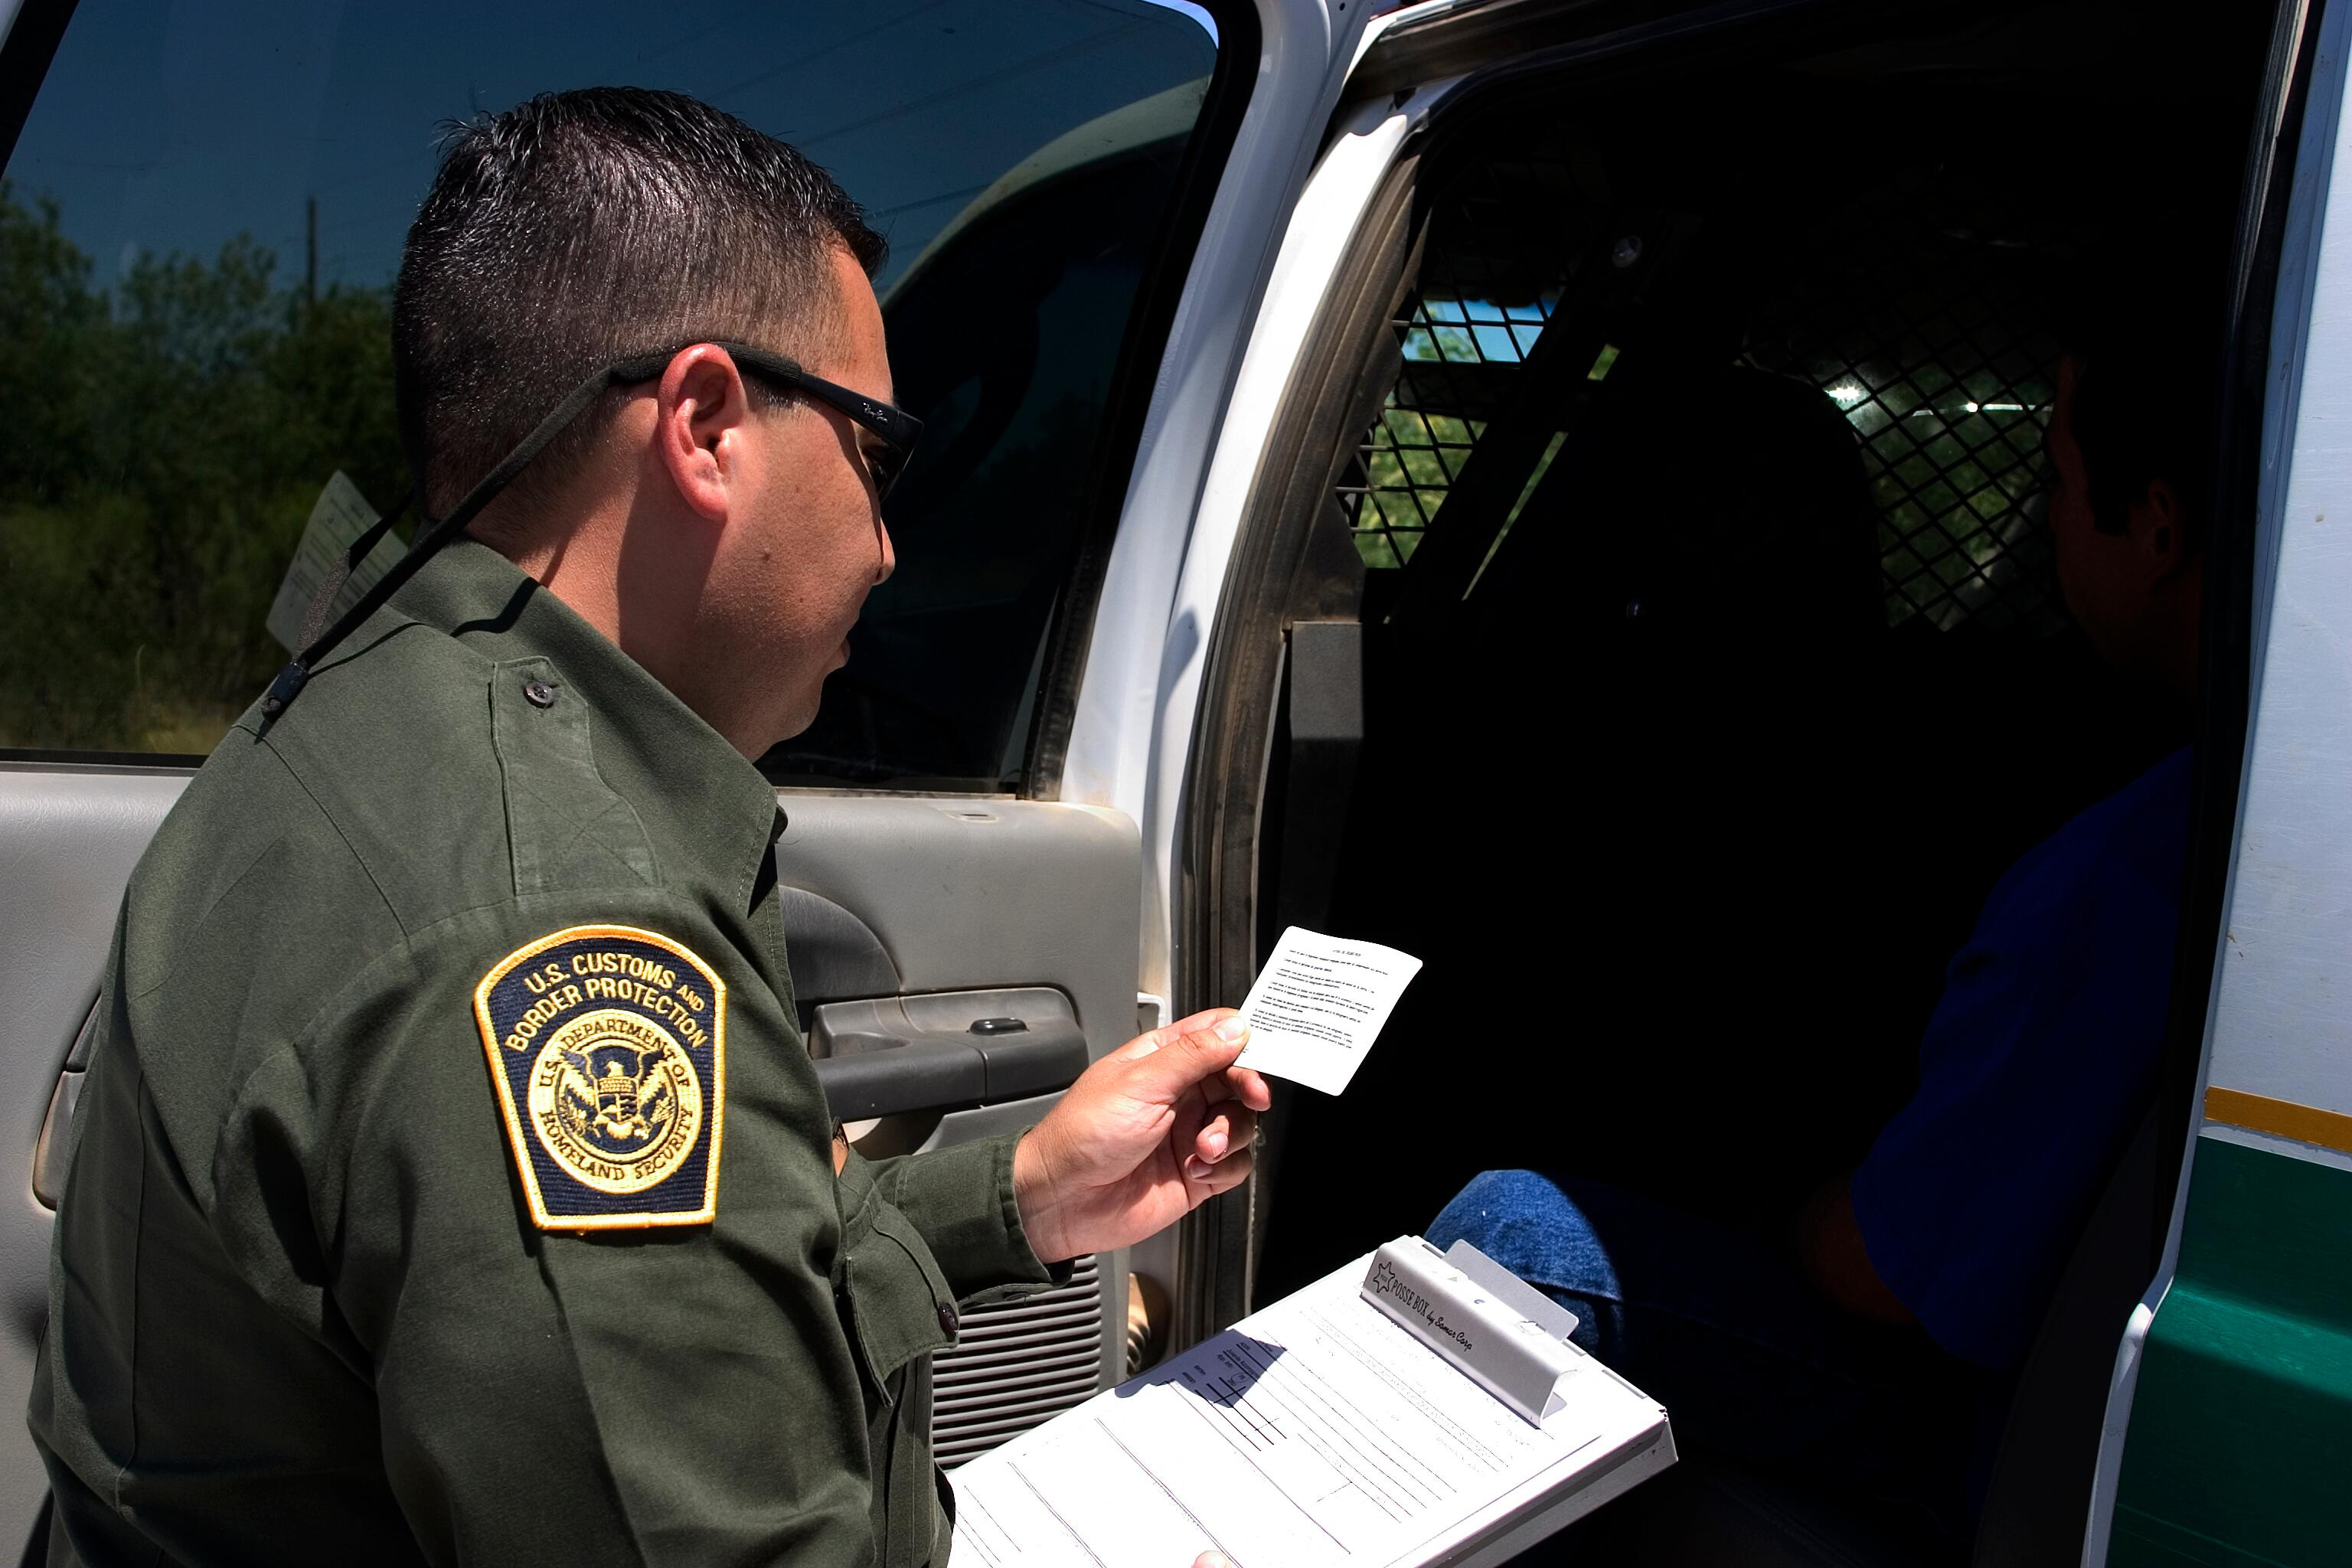 U.S. Border Patrol agent reads the Miranda rights to a Mexican national arrested for transporting drugs.